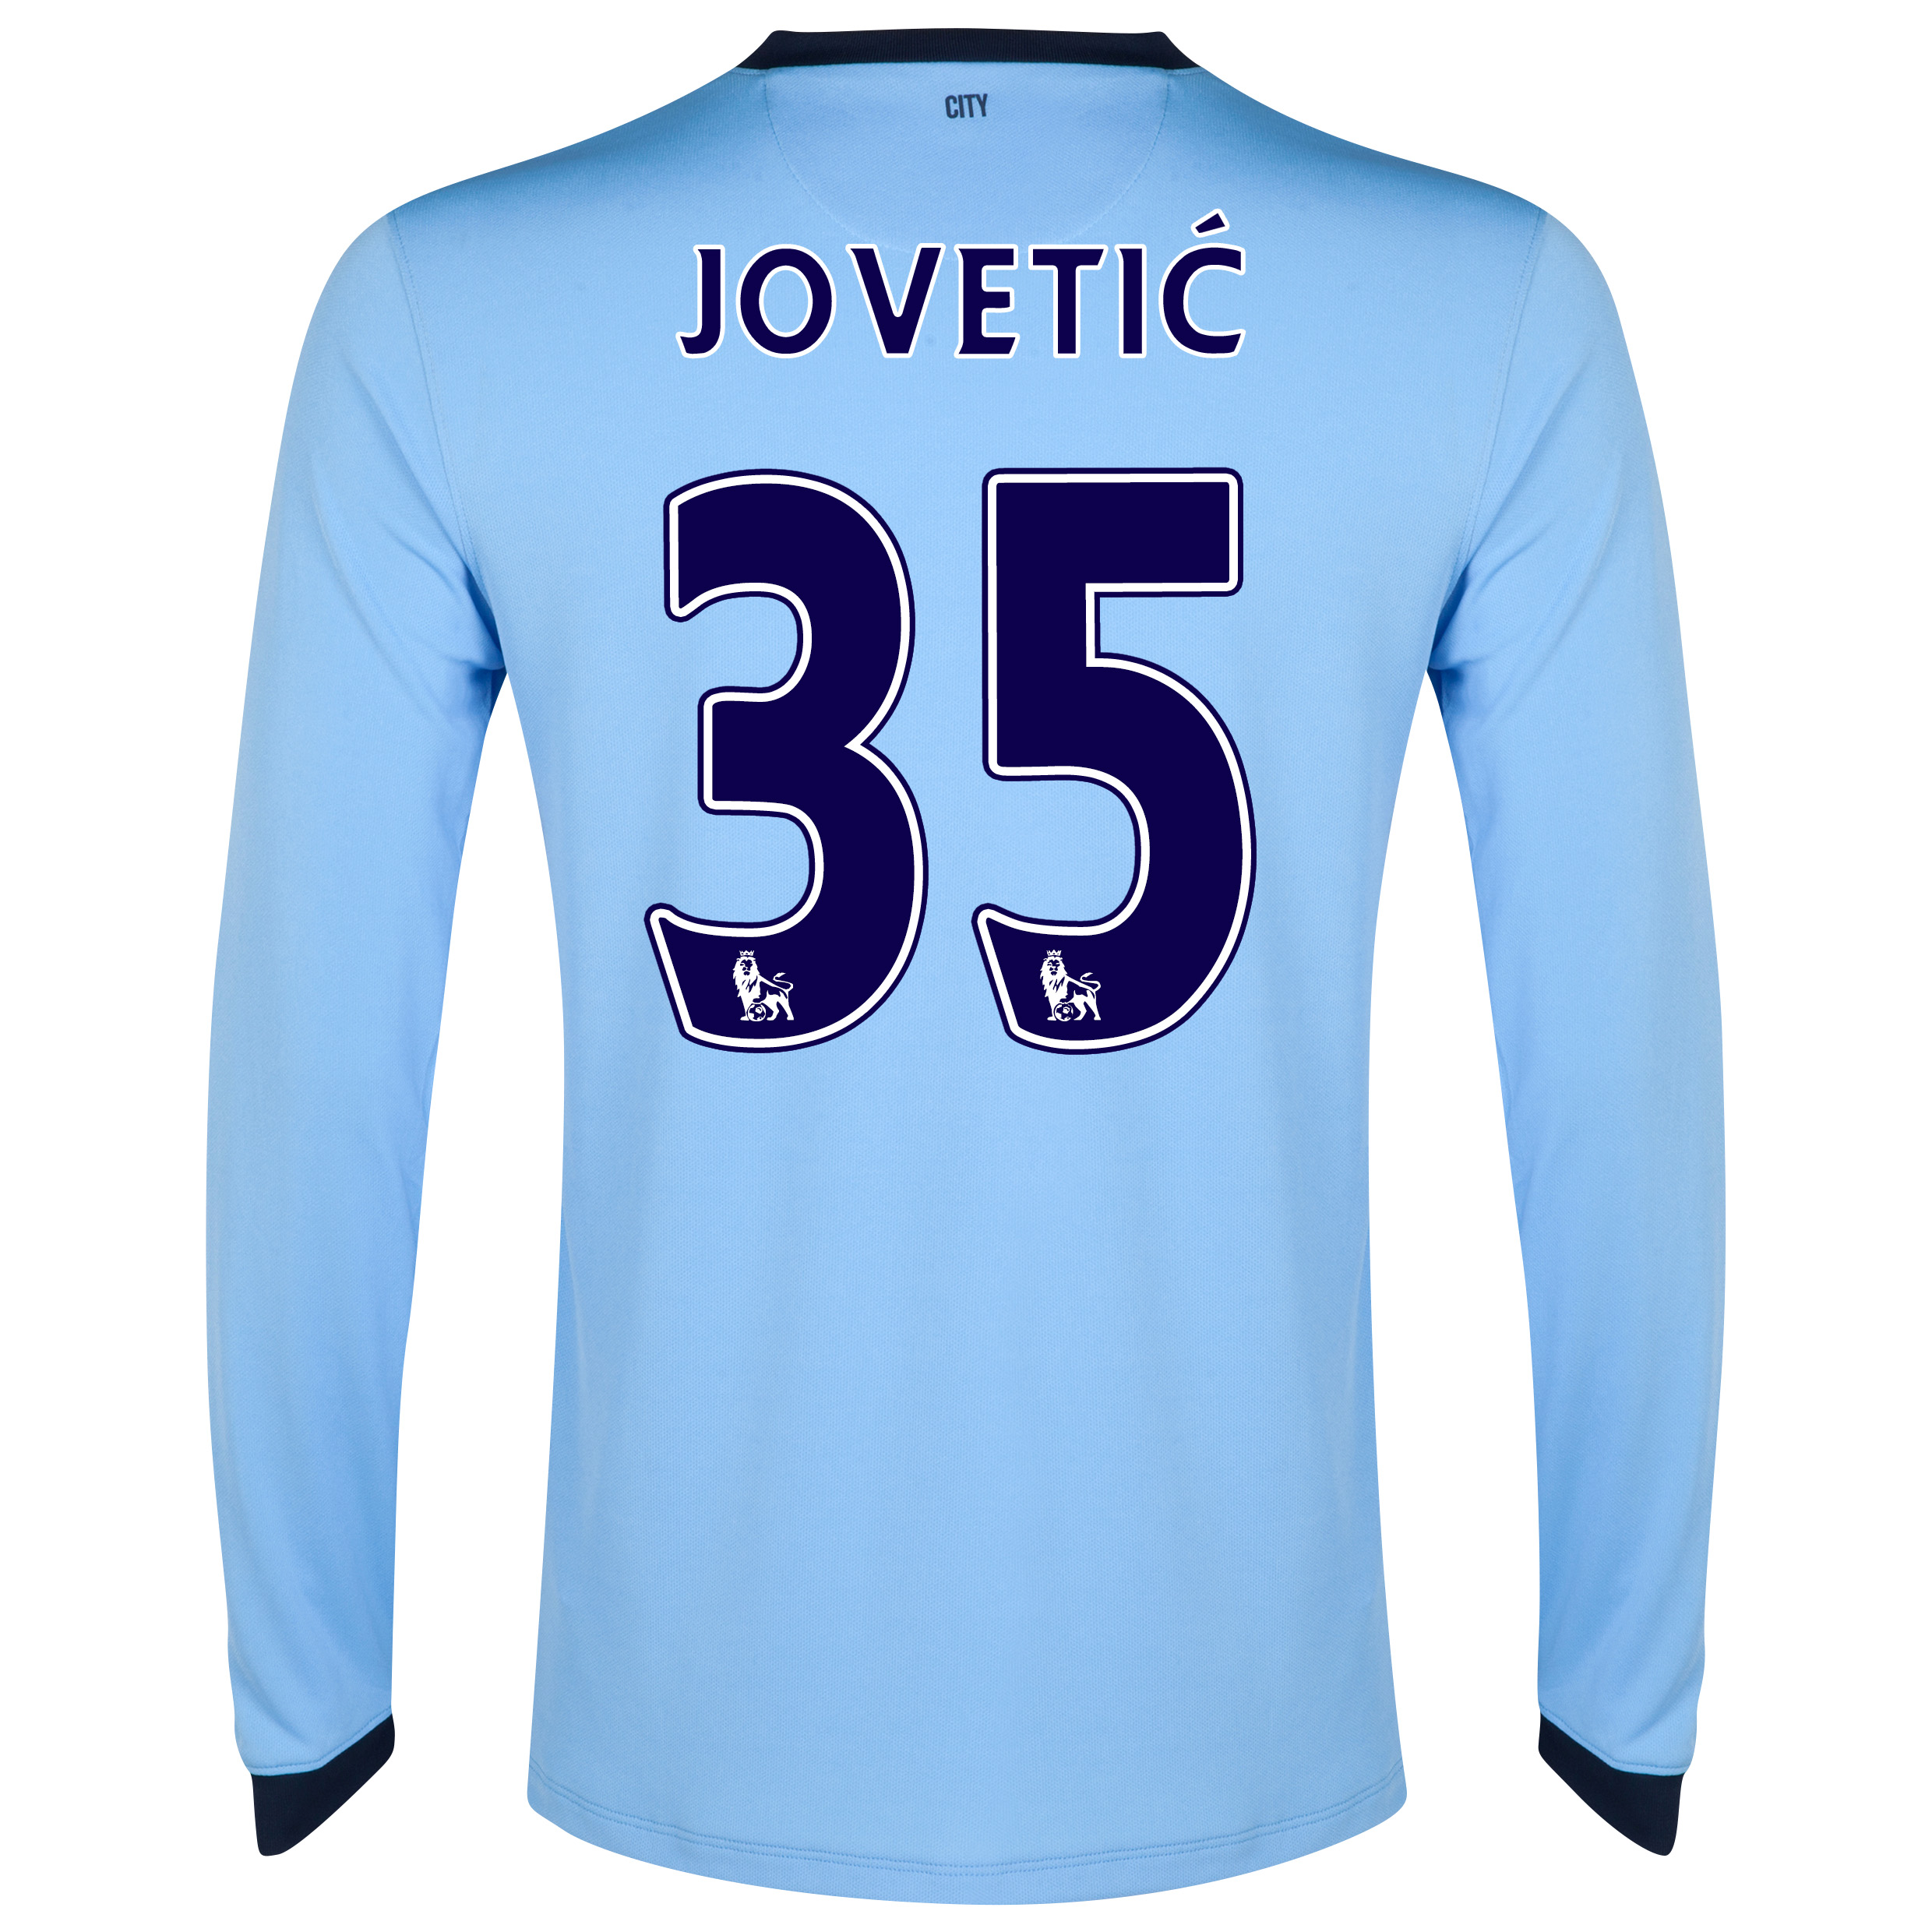 Manchester City Home Shirt 2014/15 - Long Sleeve Sky Blue with Jovetic 35 printing